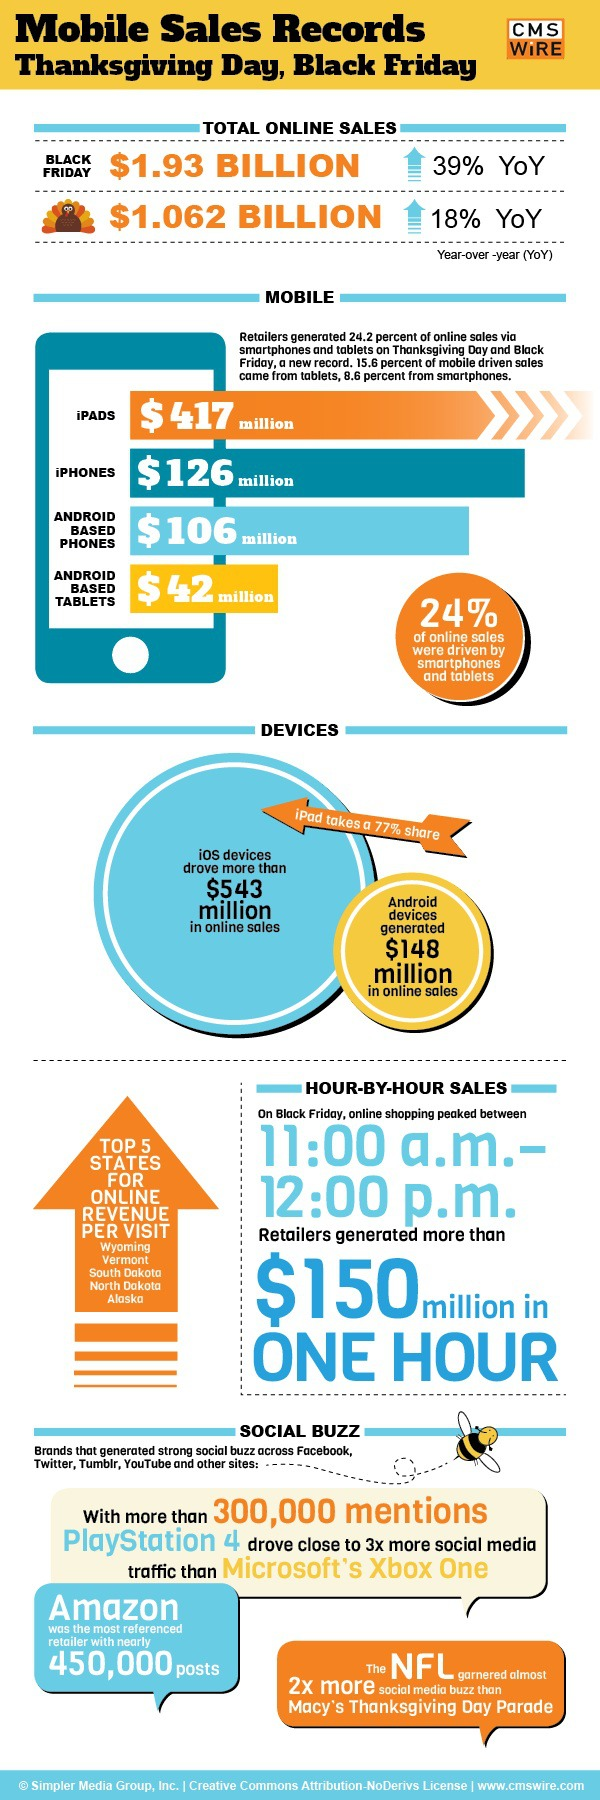 mobile sales records on thanksgiving day and black friday 2013